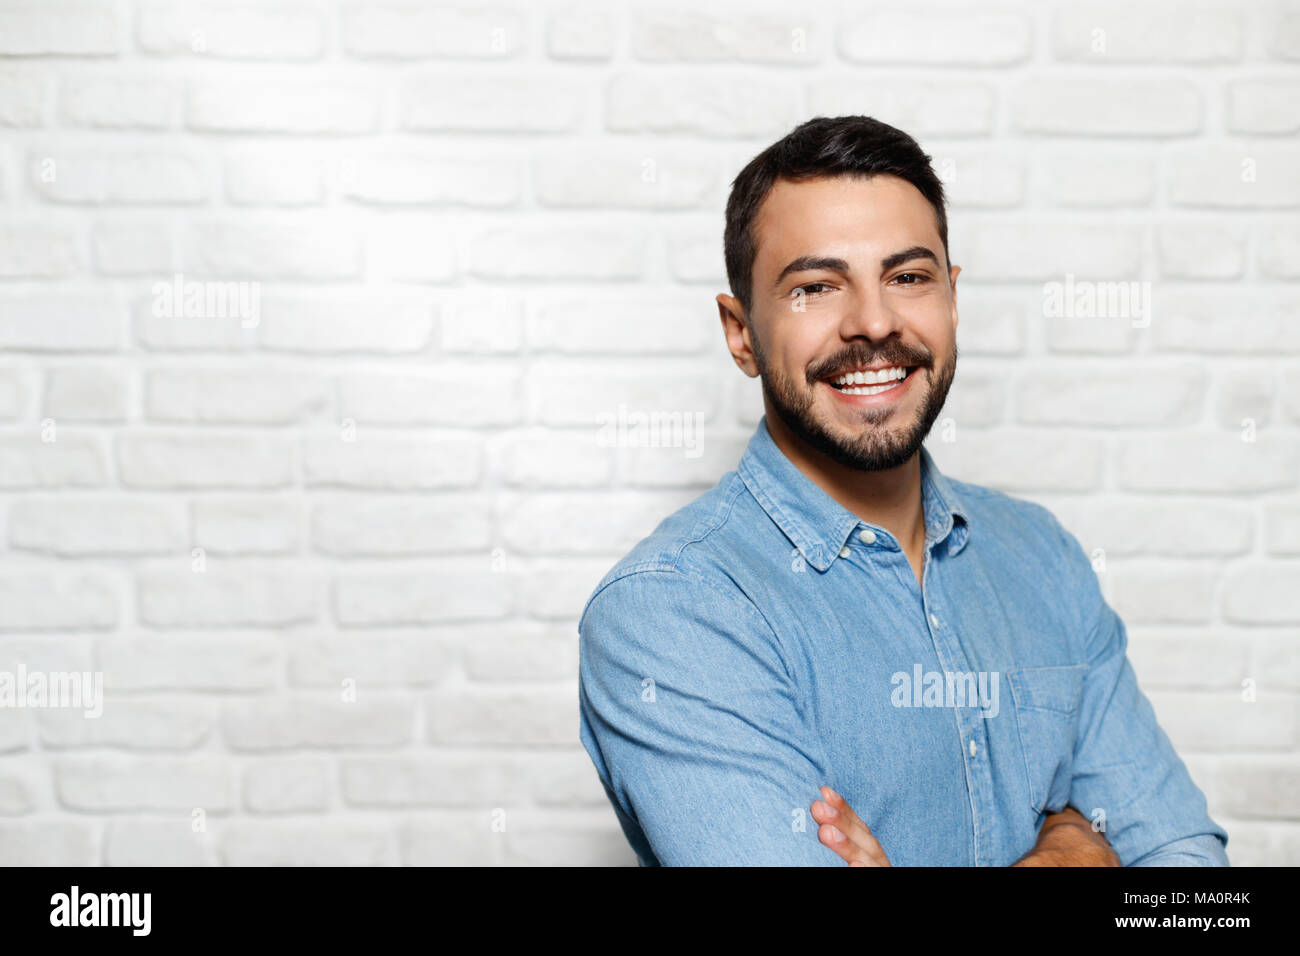 Portrait of happy Italian man smiling against white wall as background and looking at camera. - Stock Image